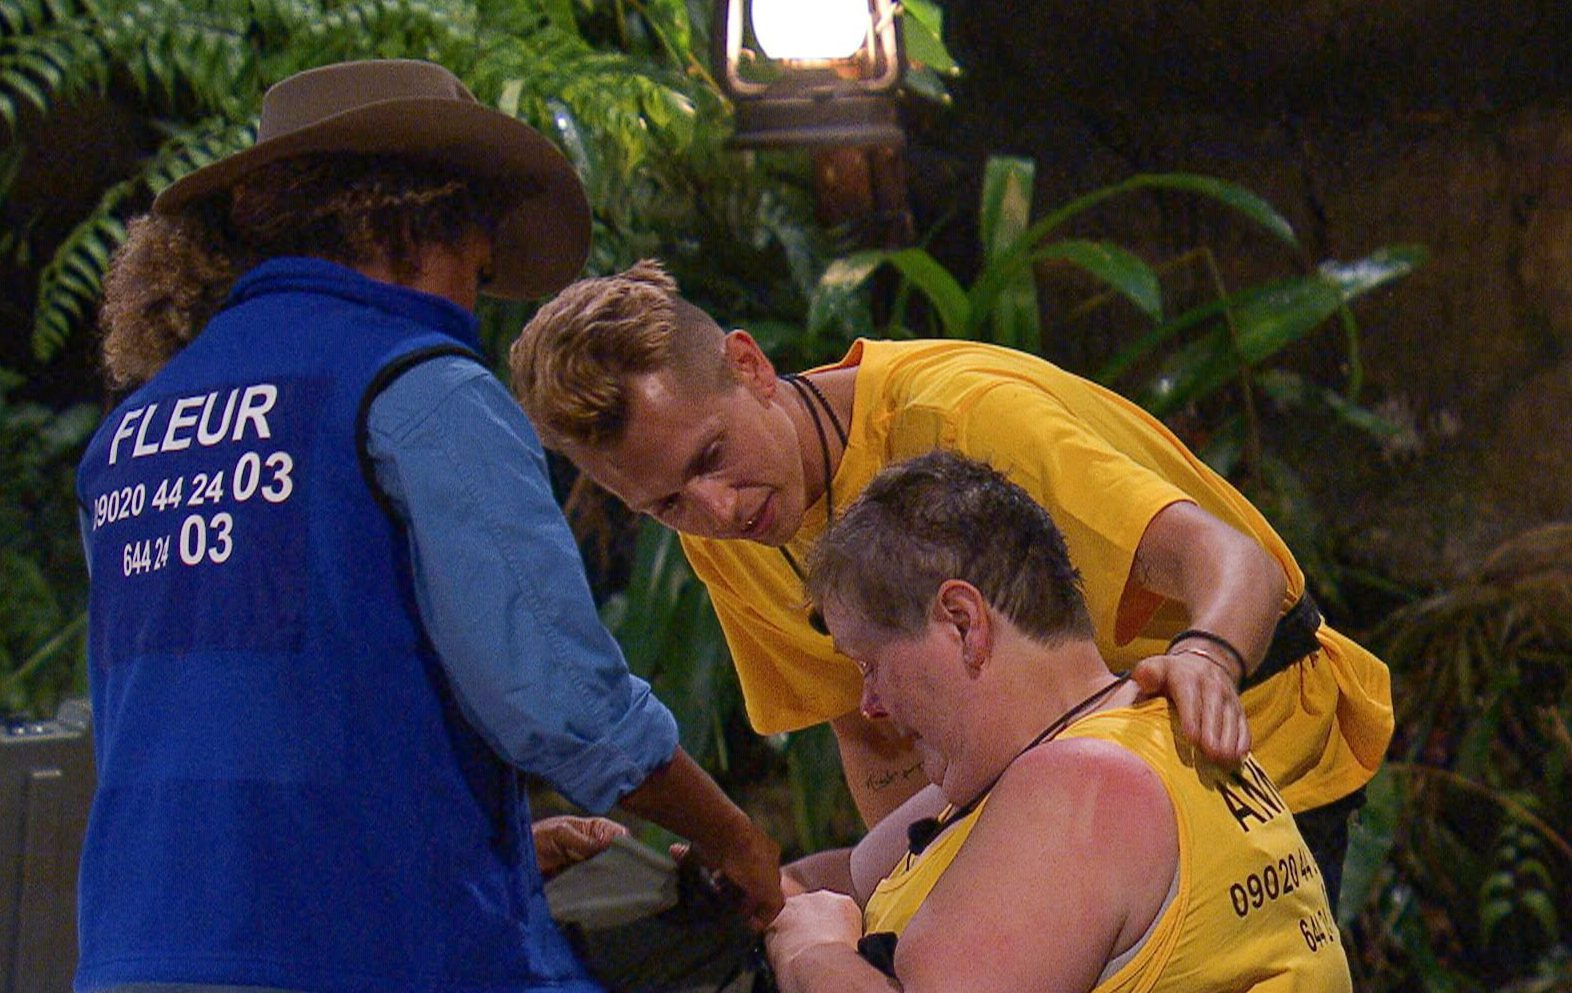 STRICT EMBARGO - NOT TO BE USED BEFORE 22:45 GMT, 18 NOV 2018 - EDITORIAL USE ONLY Mandatory Credit: Photo by ITV/REX (9982887gj) Snake Rock Camp Arrivals - Anne Hegerty 'I'm a Celebrity...Get Me Out of Here!' TV Show, Series 18, Australia - 18 Nov 2018